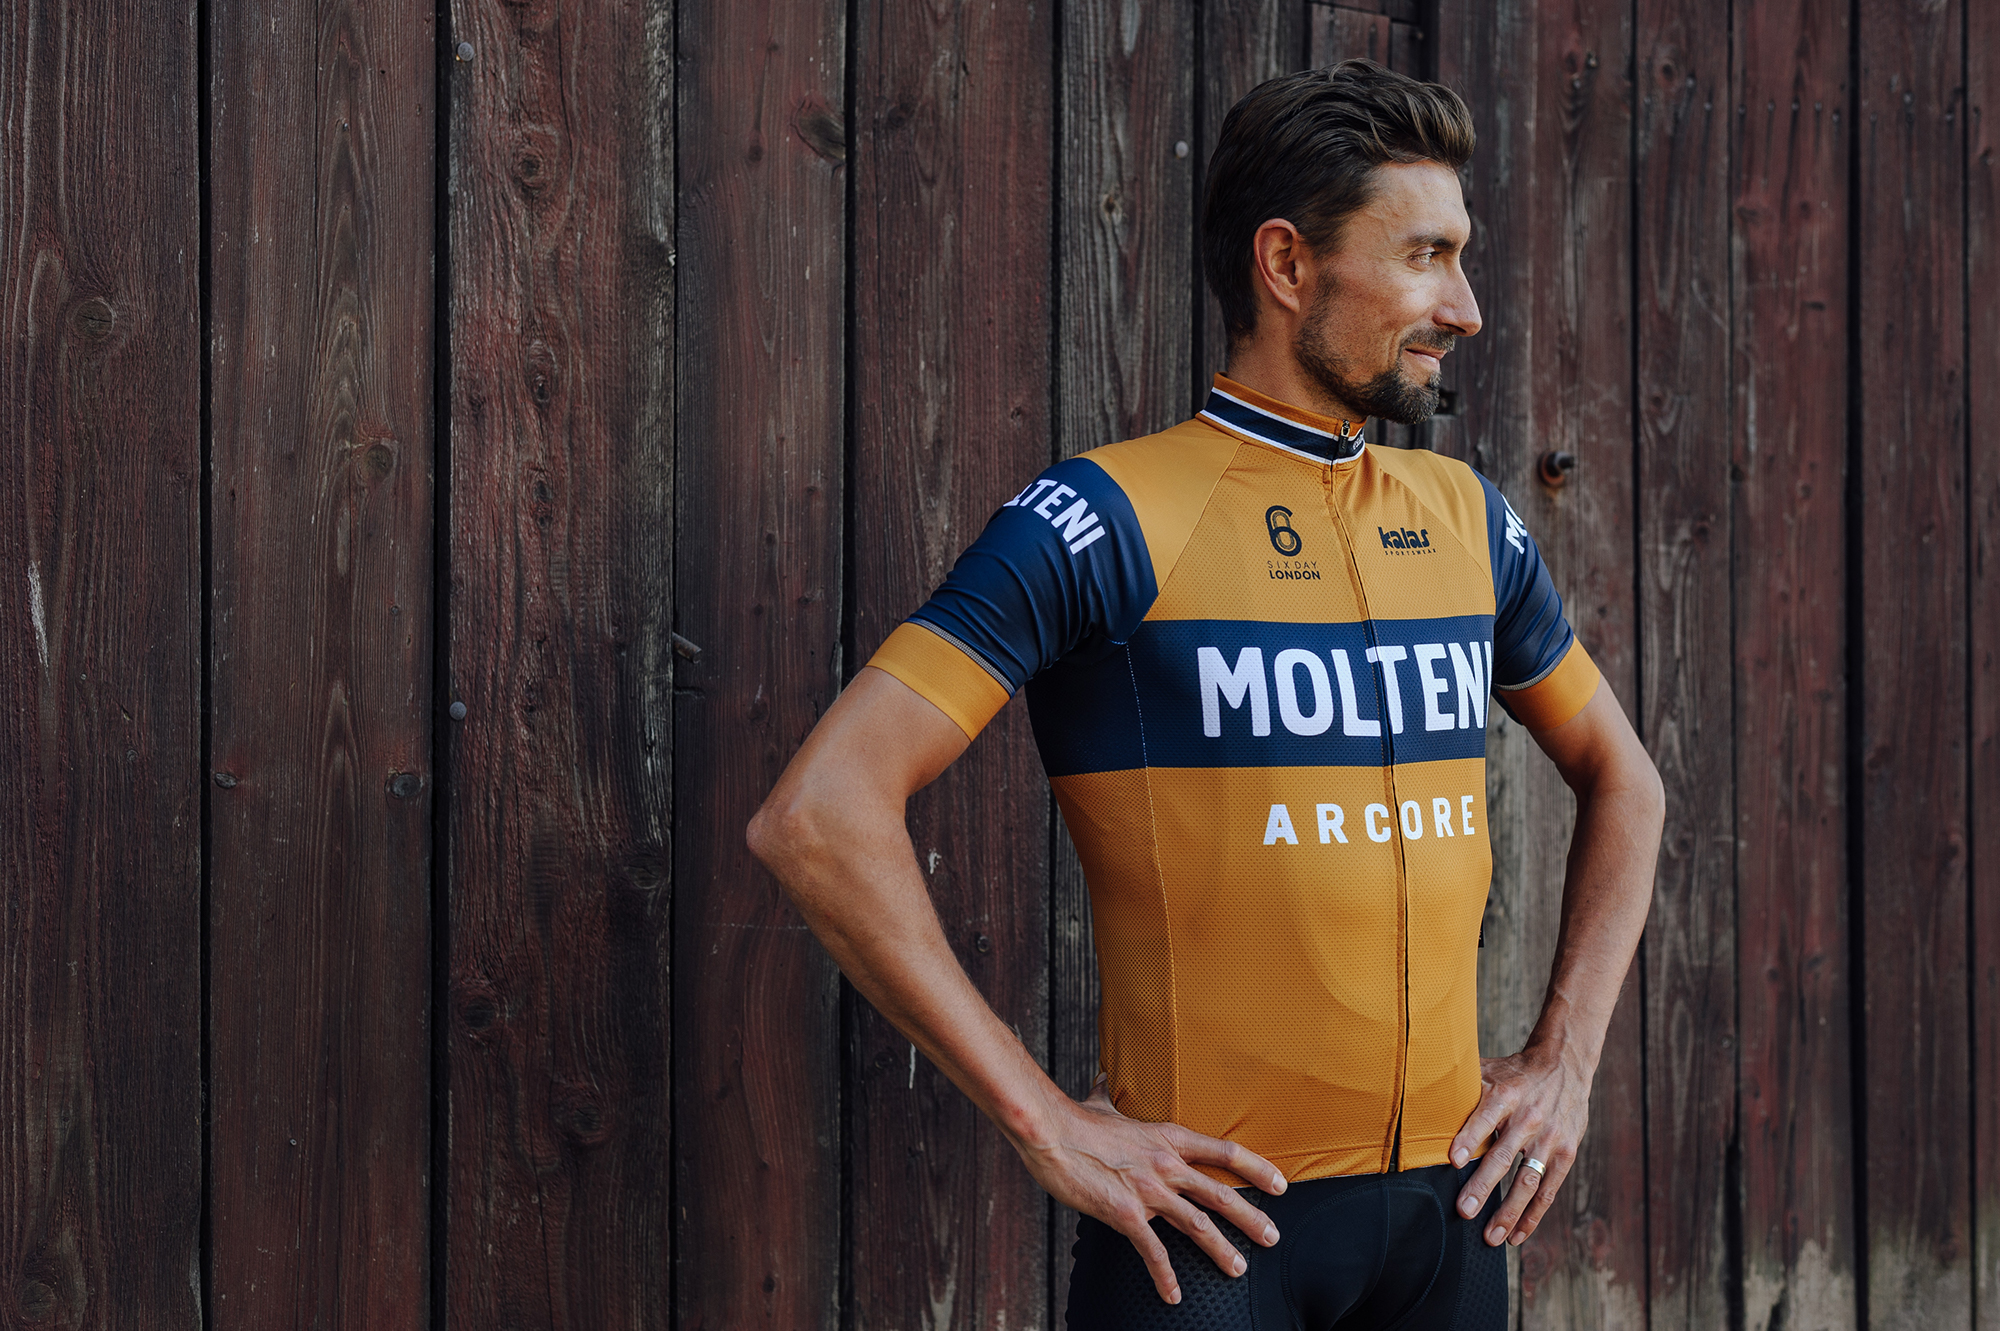 a cyclist stood wearing the molteni jersey